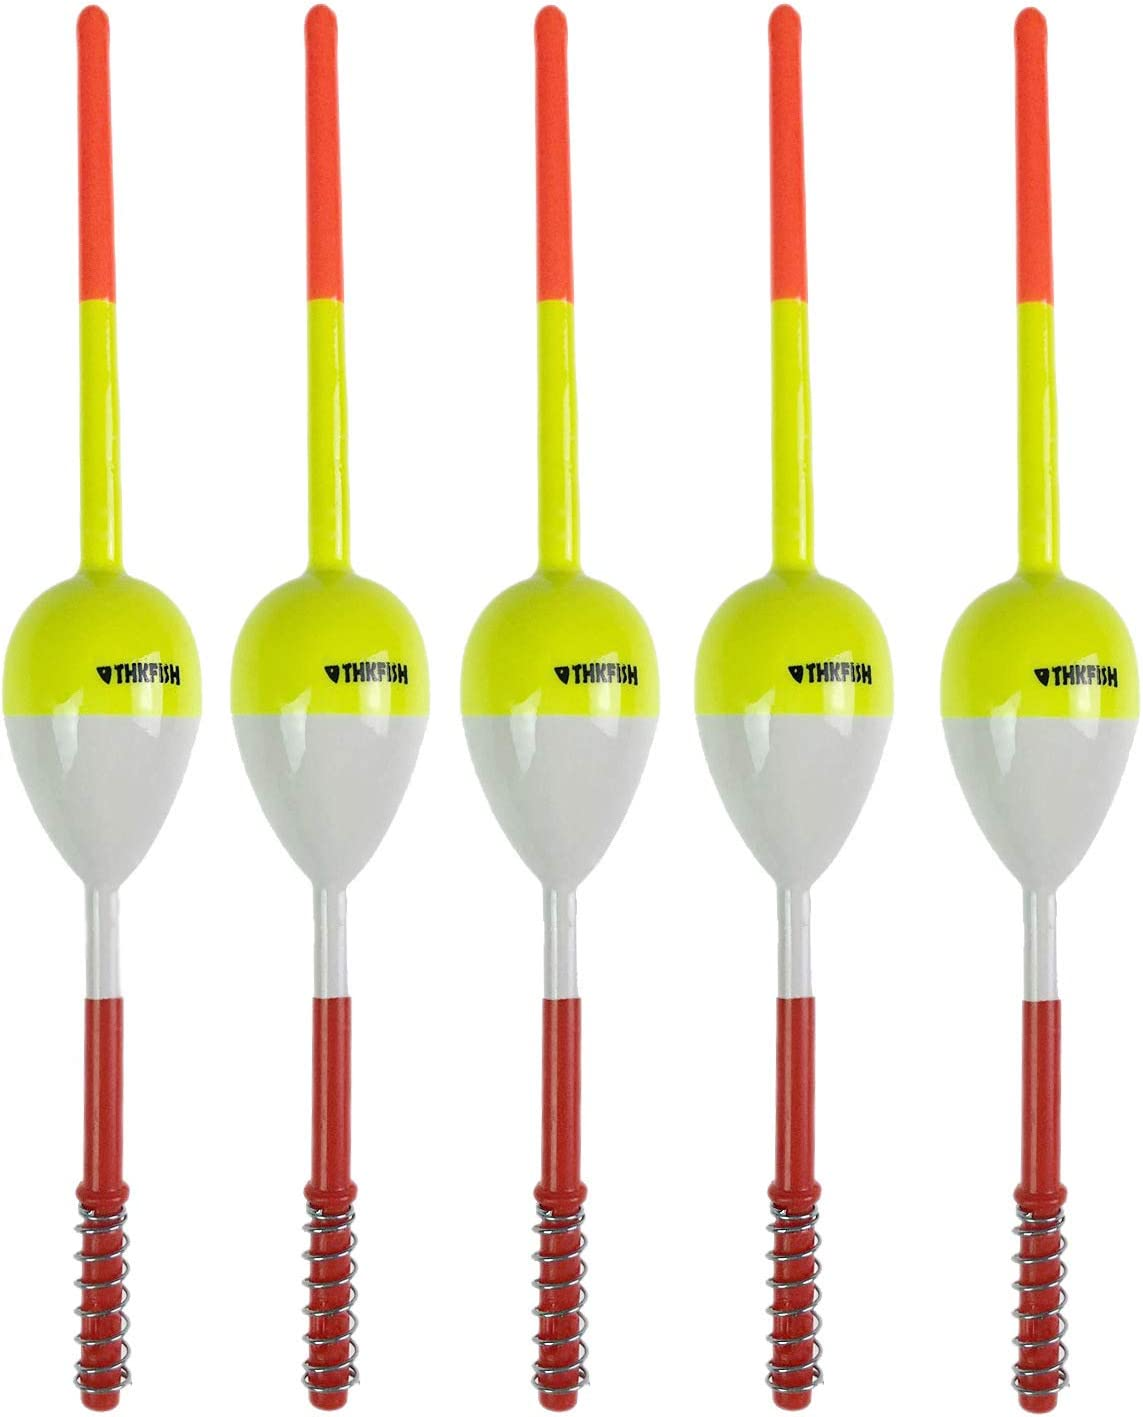 """thkfish Fishing Floats and Bobbers Balsa Wood Floats Spring Bobbers Oval Stick Floats Slip Bobbers for Crappie Panfish Walleyes(1""""X0.7""""X6"""") (1.25""""X0.75""""X6"""") (2""""X1.14""""X5.86"""") 5pcs"""